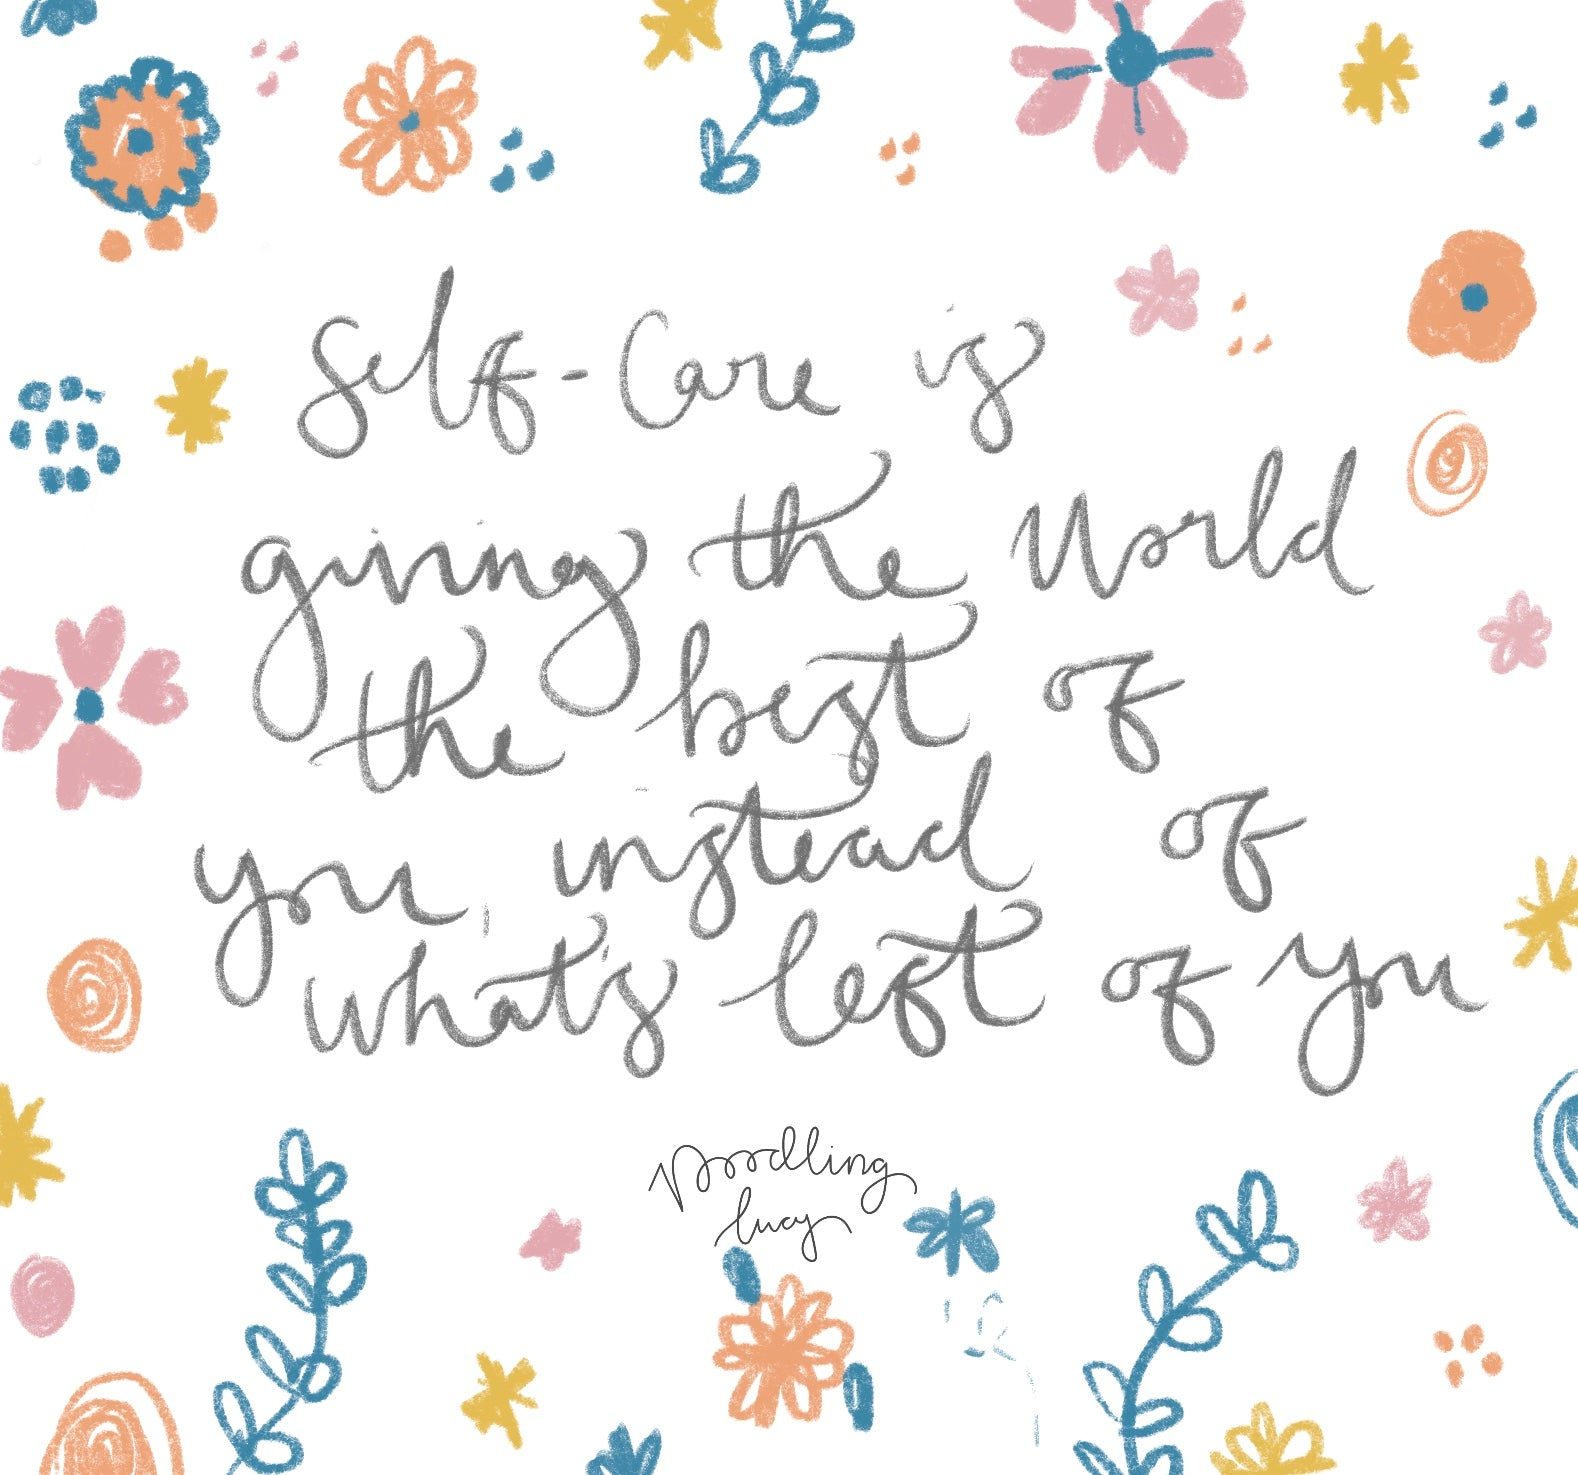 self care is giving the world the best of you not whats left of you